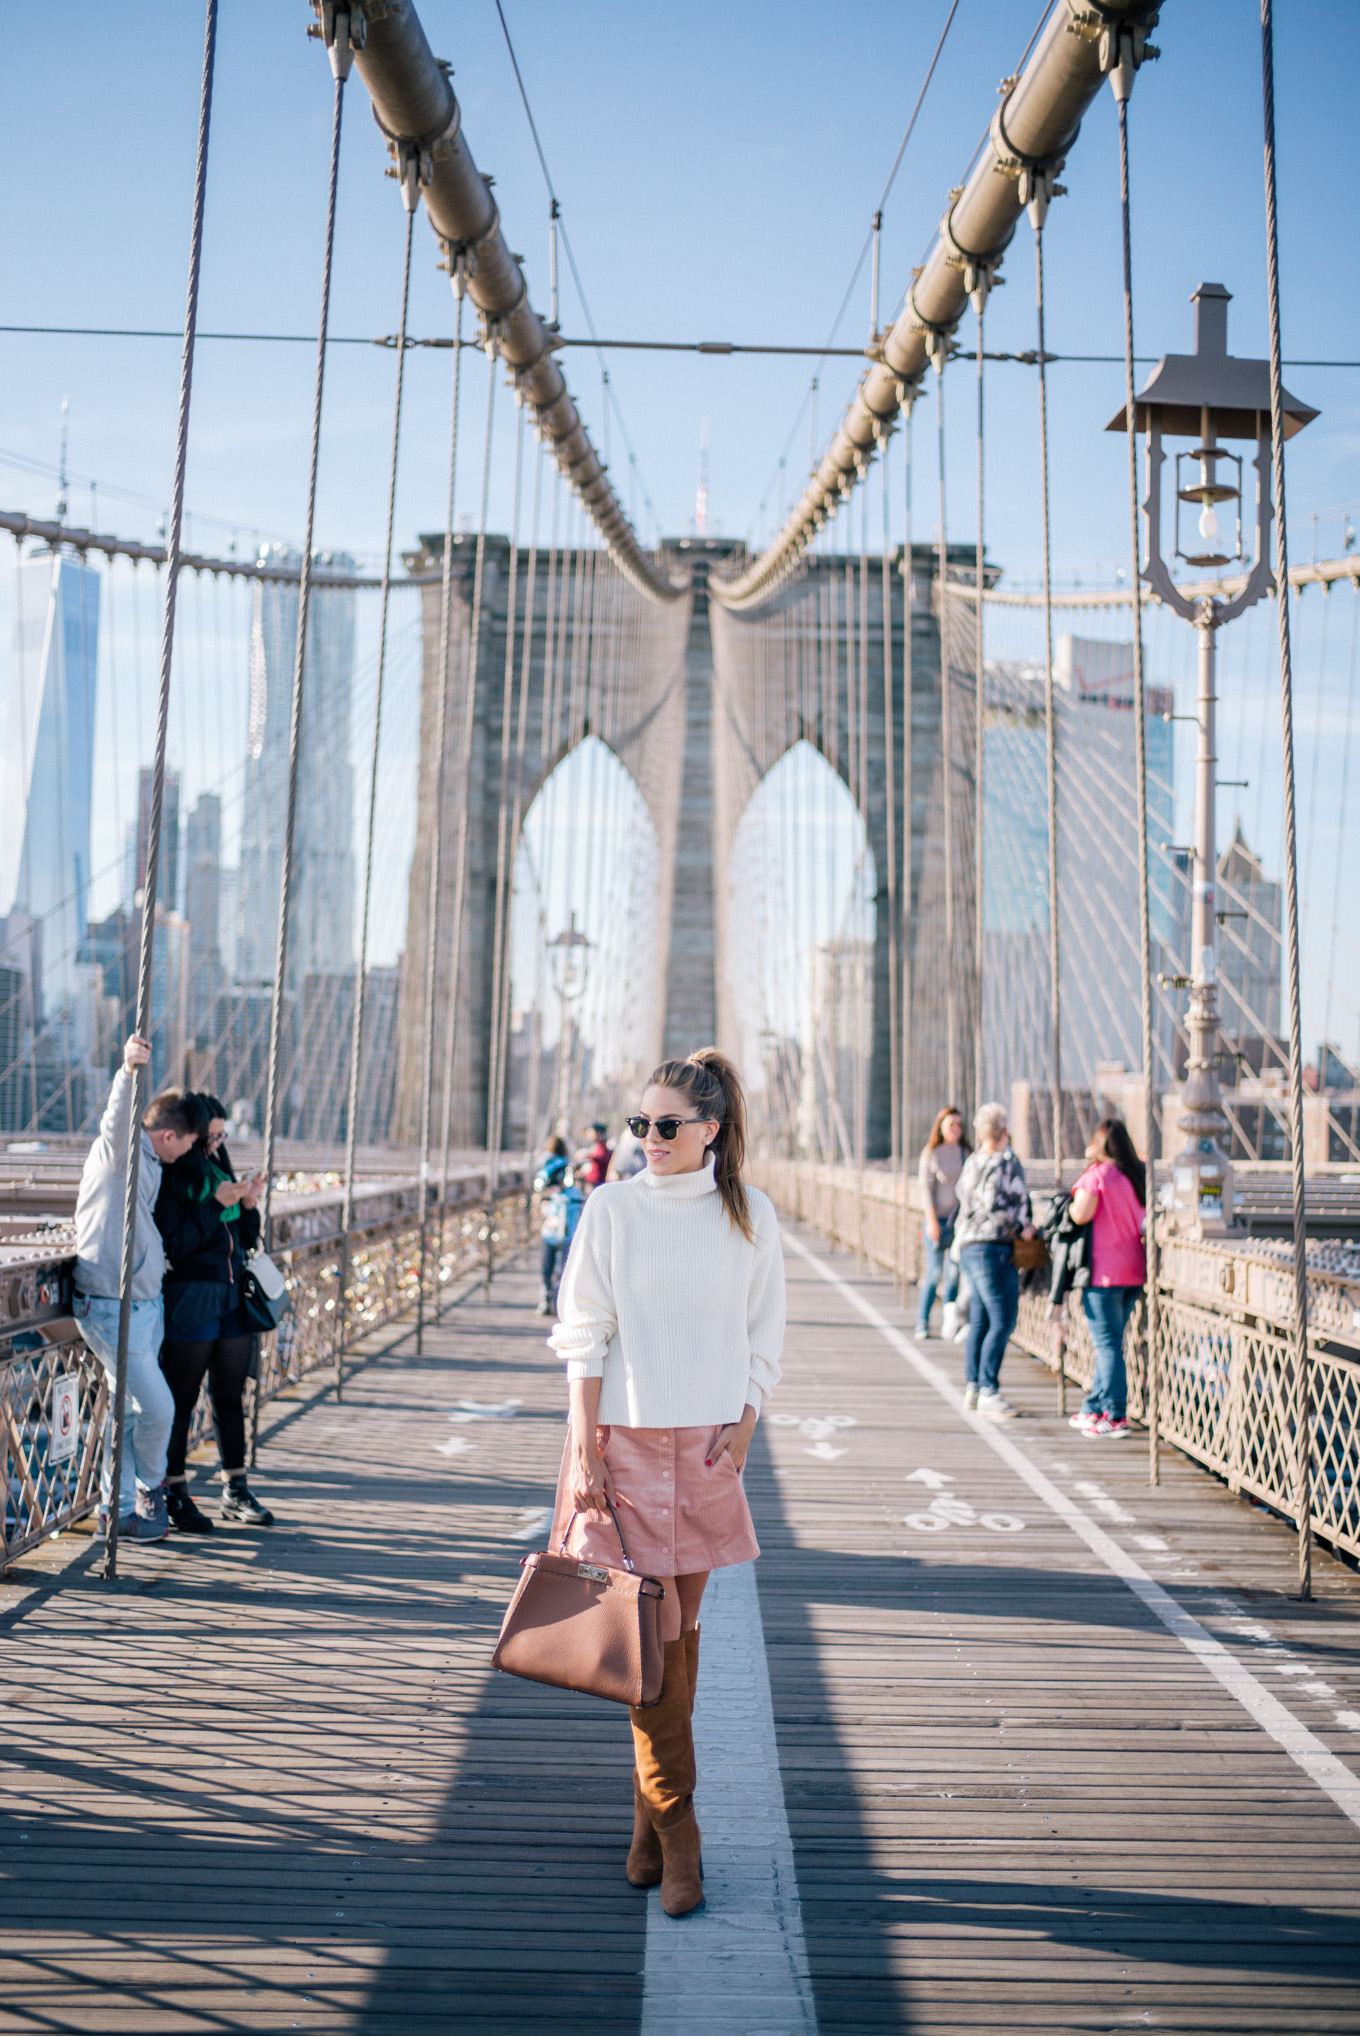 gmg-brooklyn-bridge-1009836